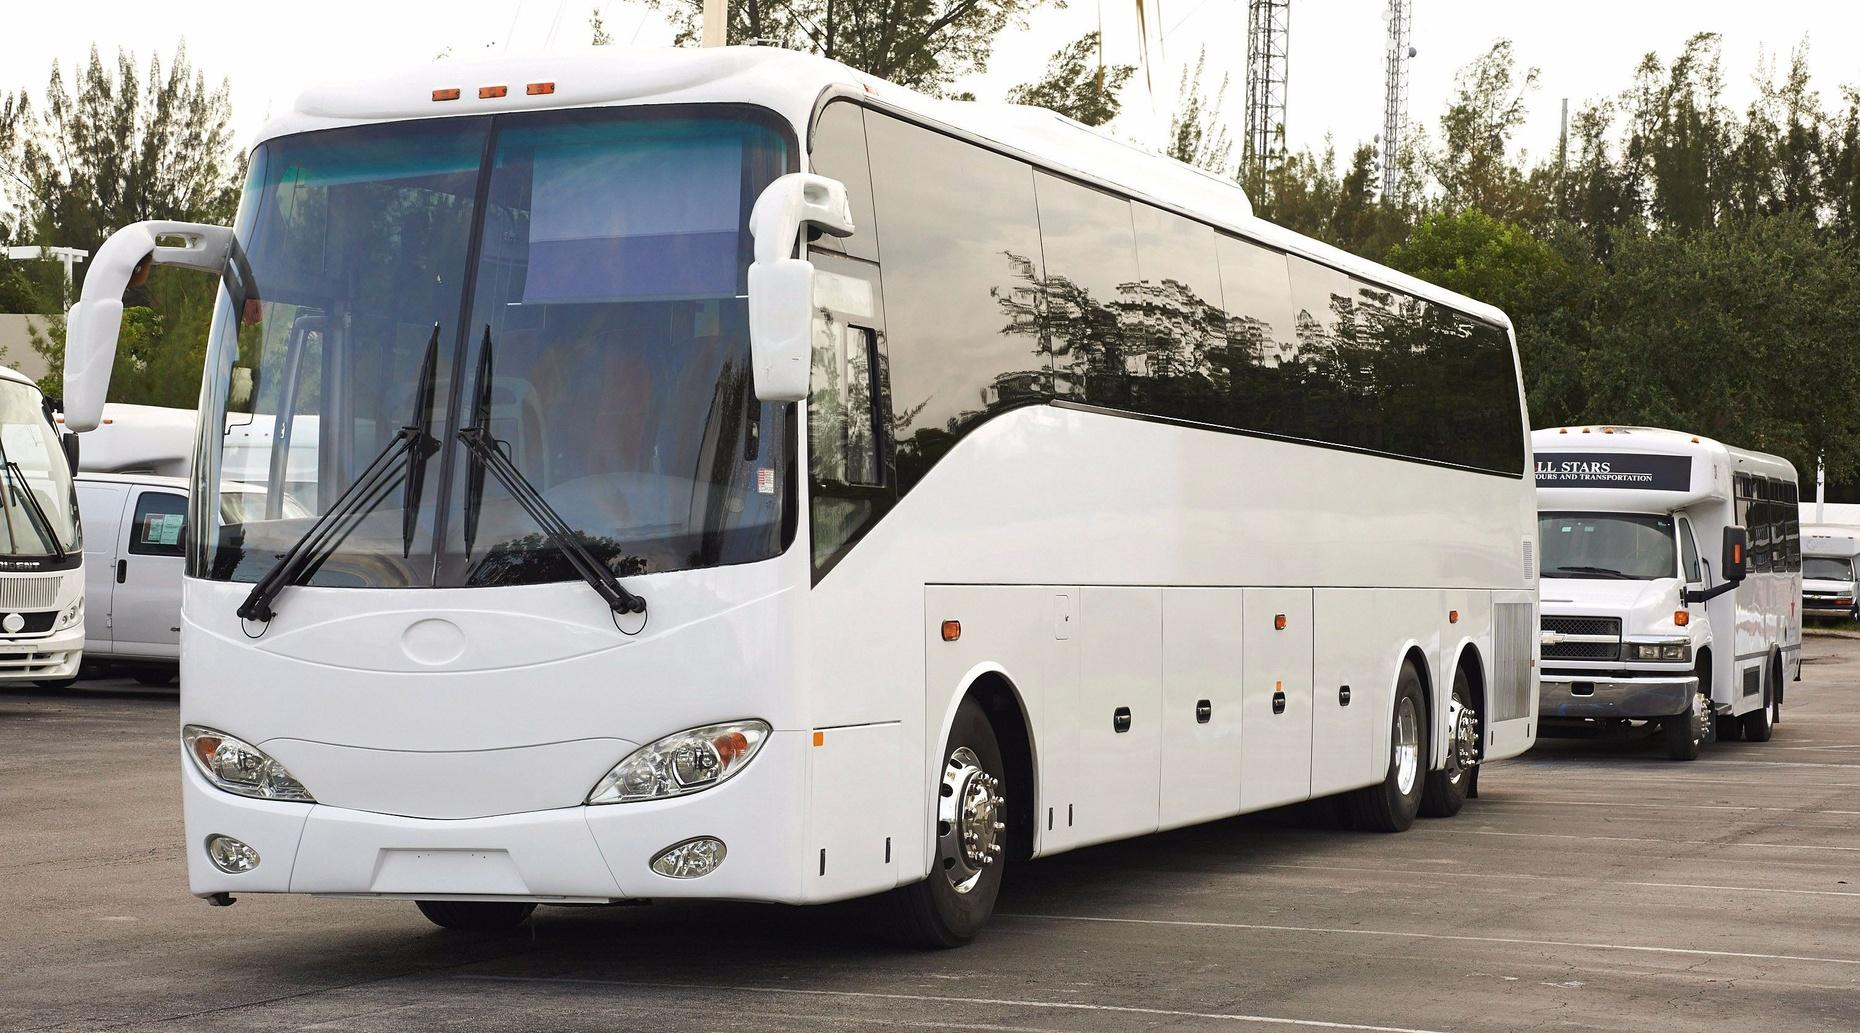 Shuttle from Port Everglades to Fort Lauderdale Airport